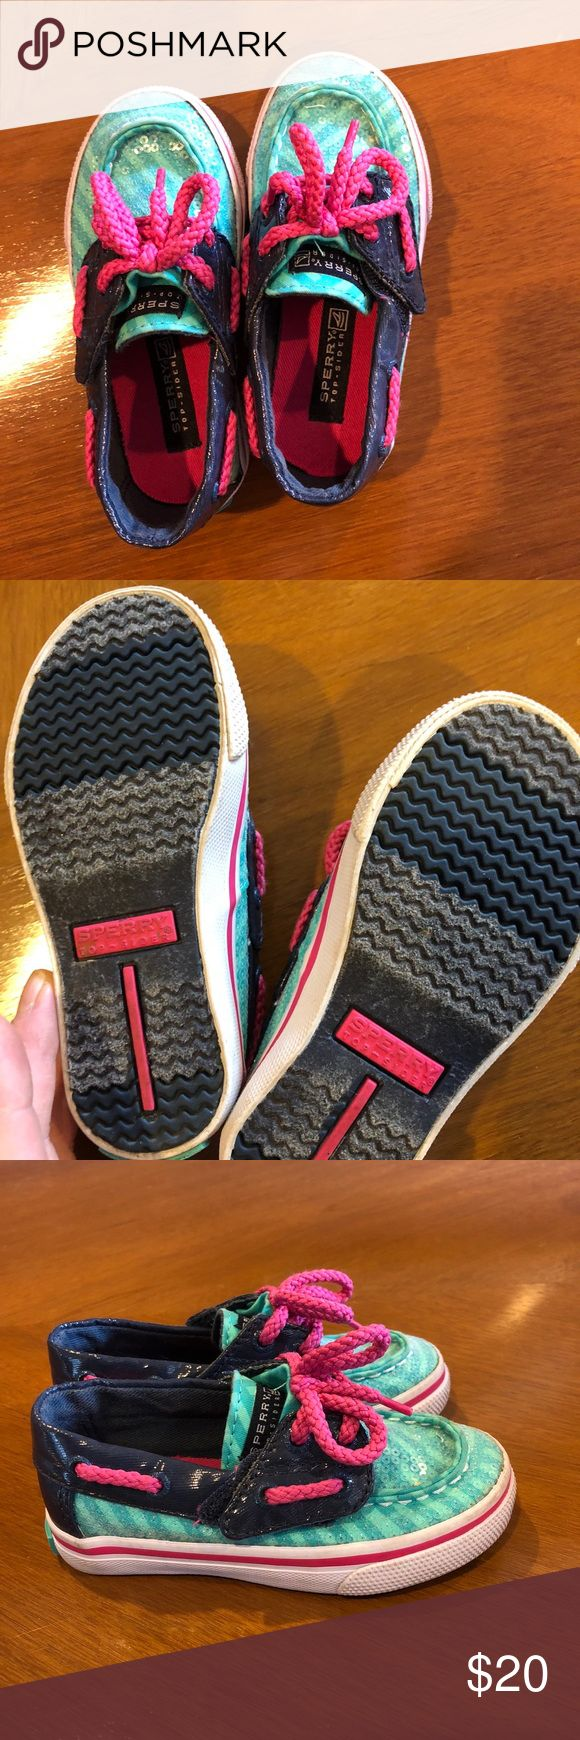 Girl Toddler Sperry Adorable!  Excellent used condition!  Worn only a few times! Sperry Shoes Sneakers